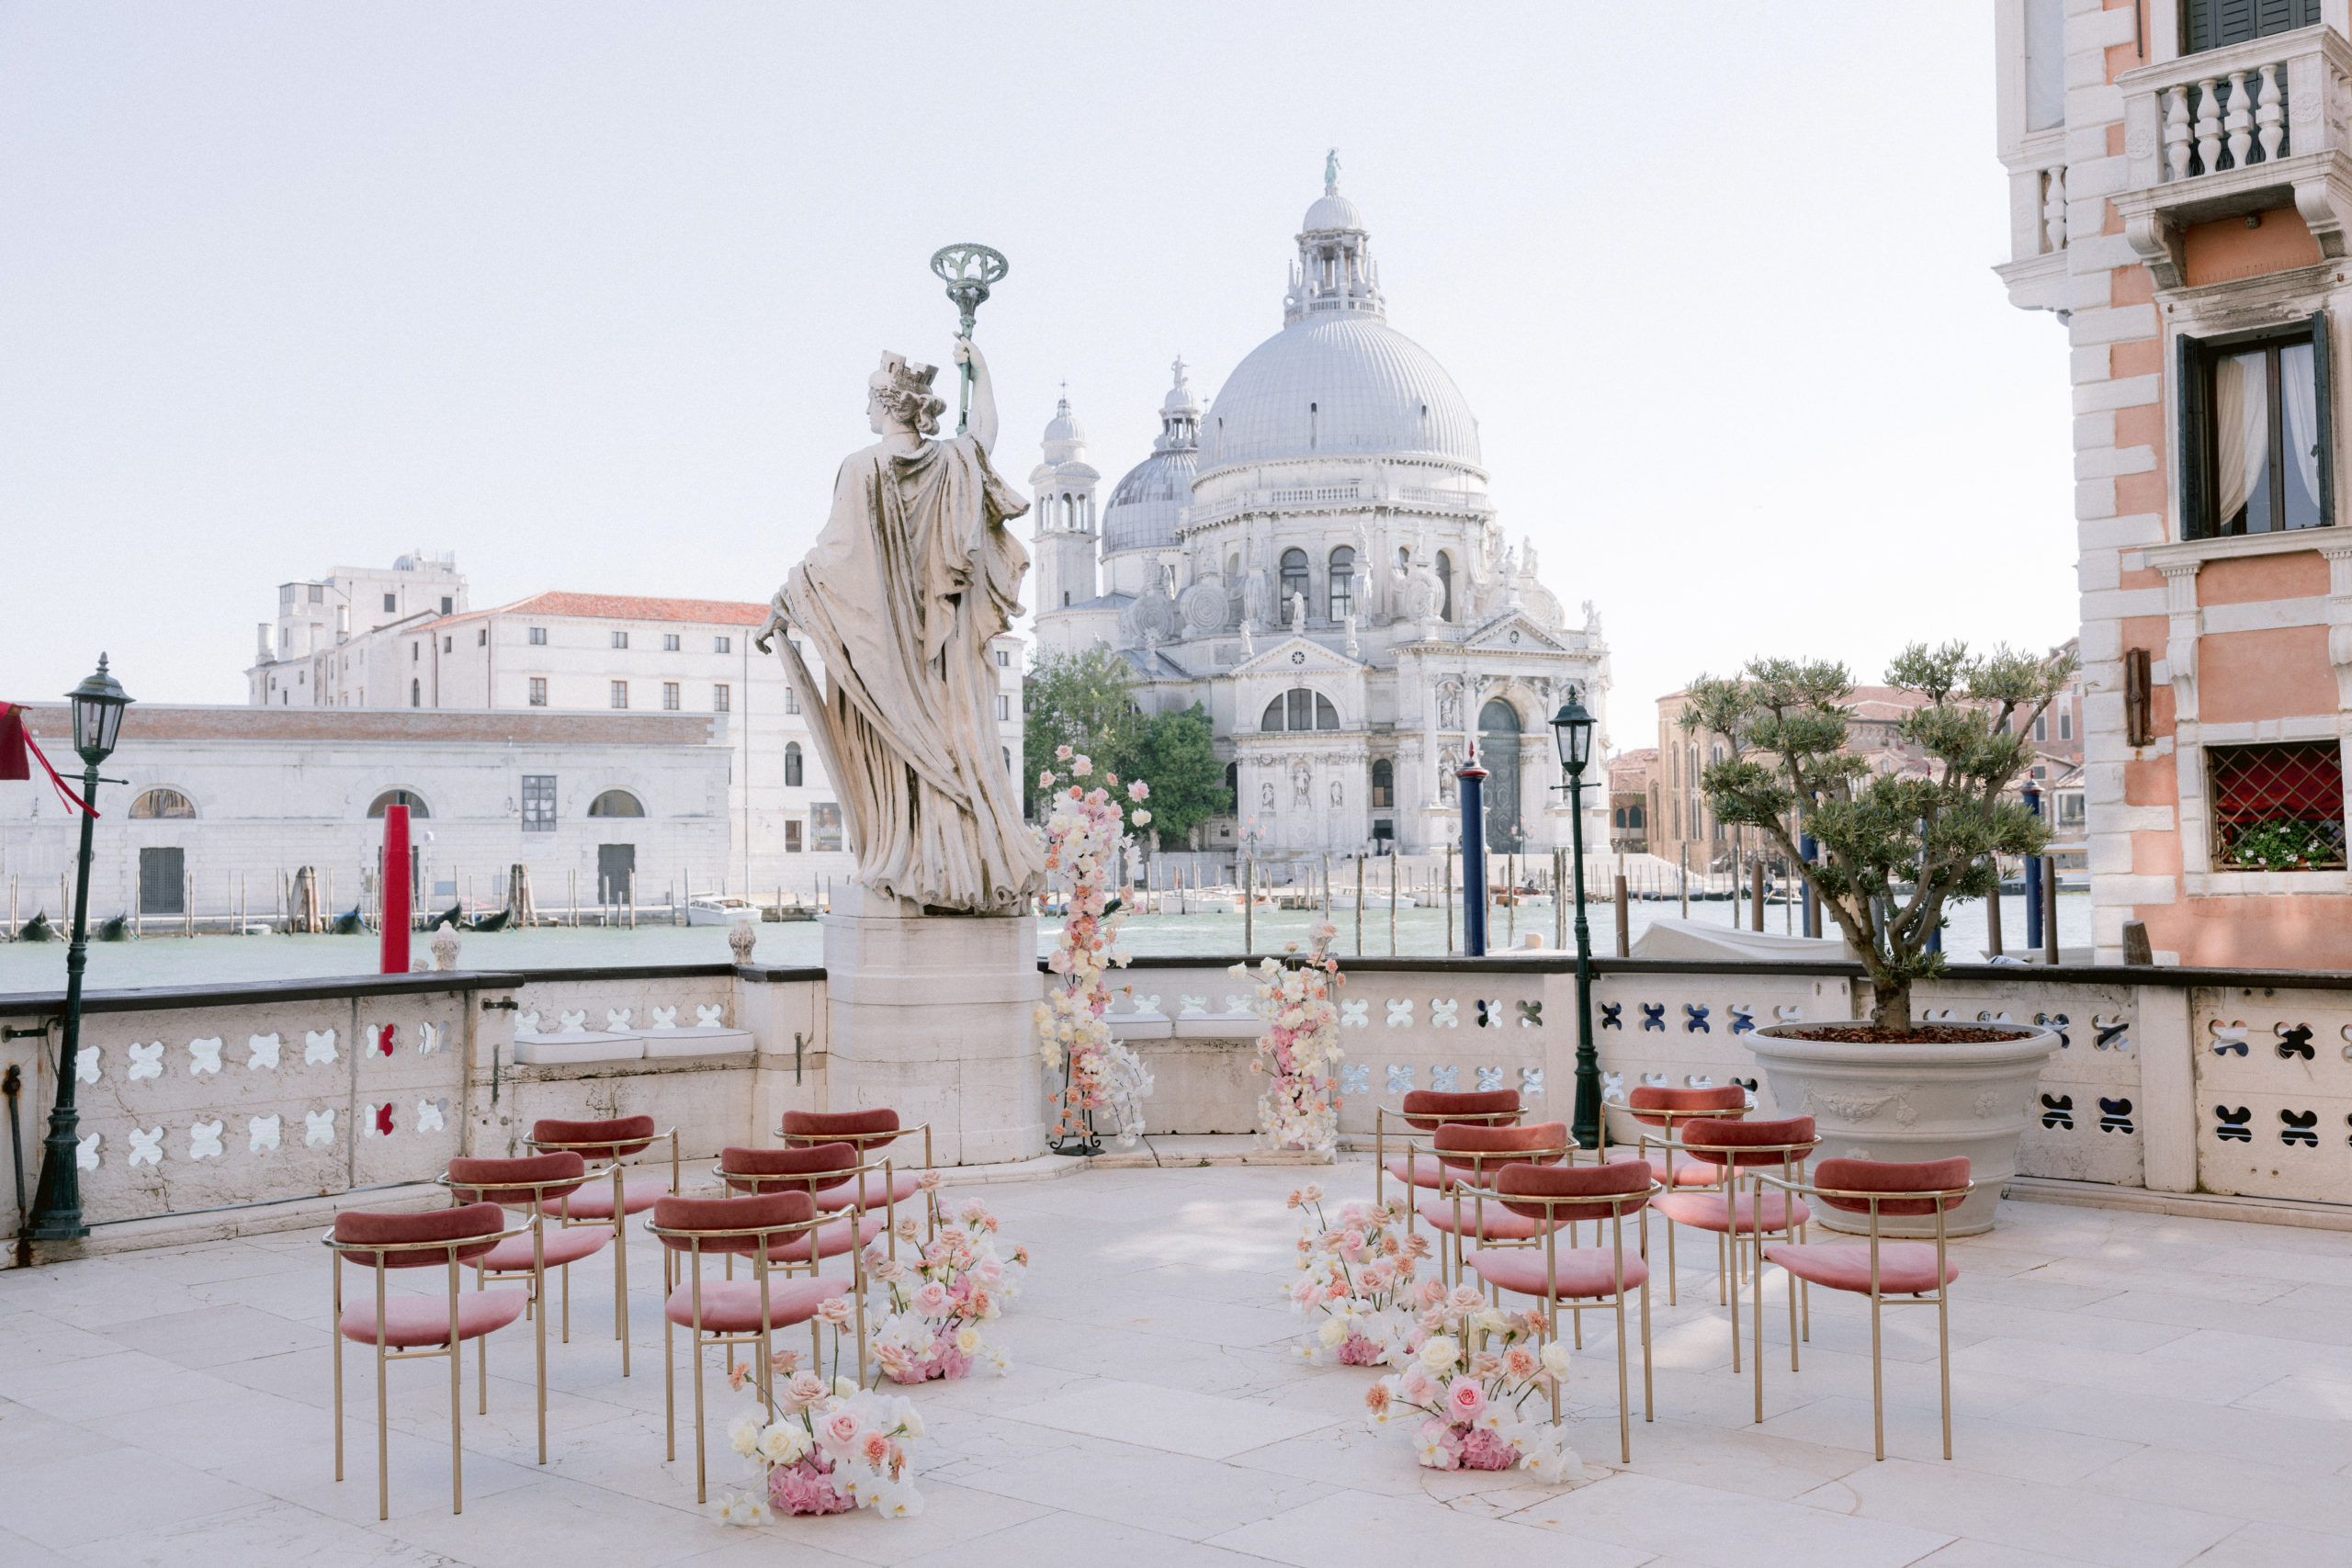 stunning wedding venue view canals of Venice wedding Italy